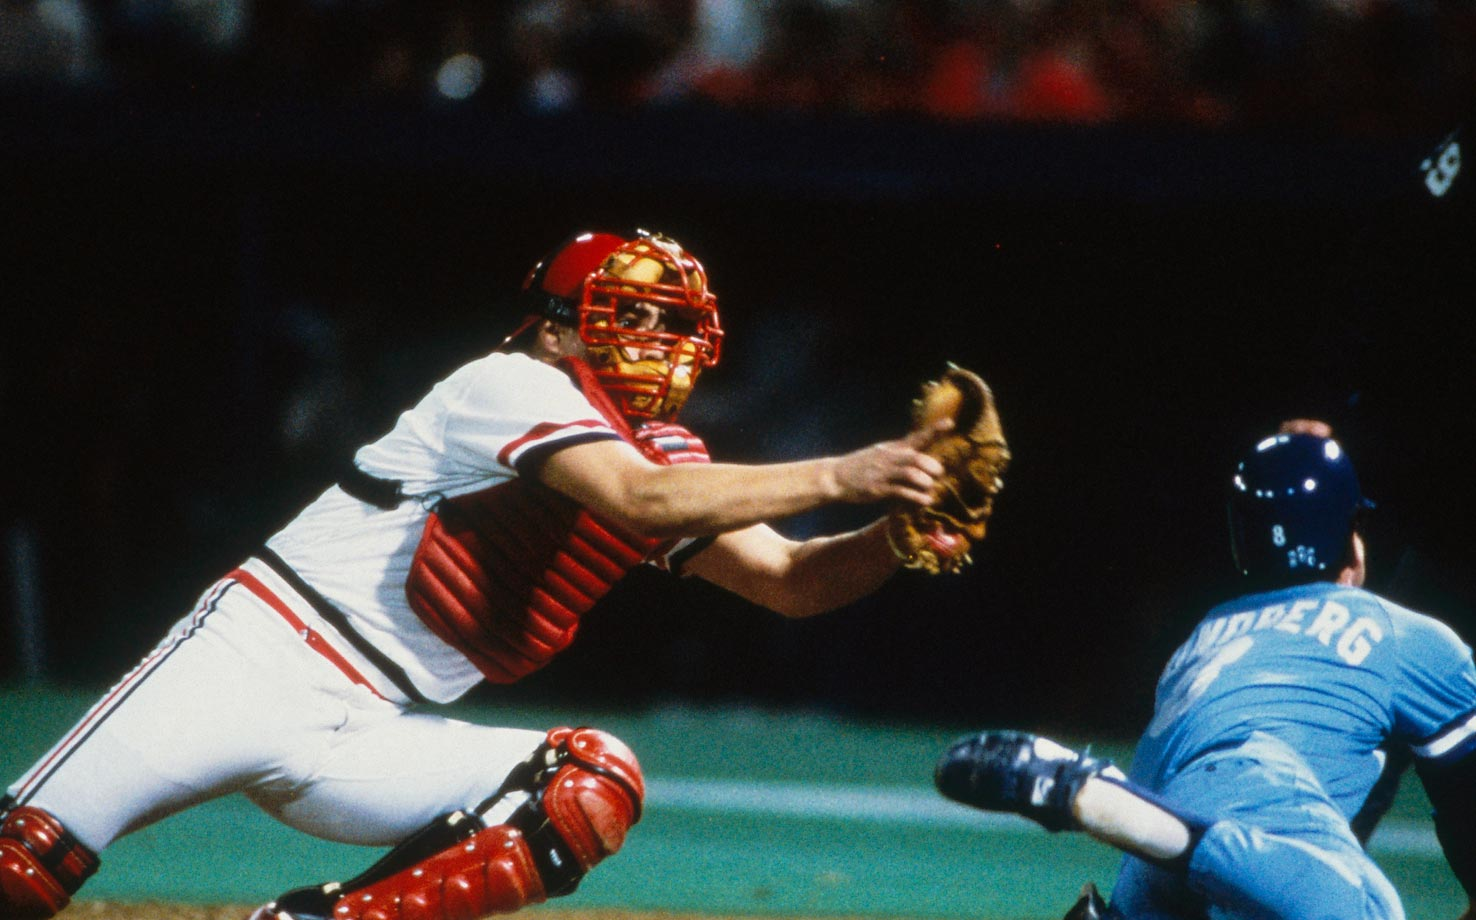 Cardinals catcher Darrell Porter reaches to tag Jim Sundberg.